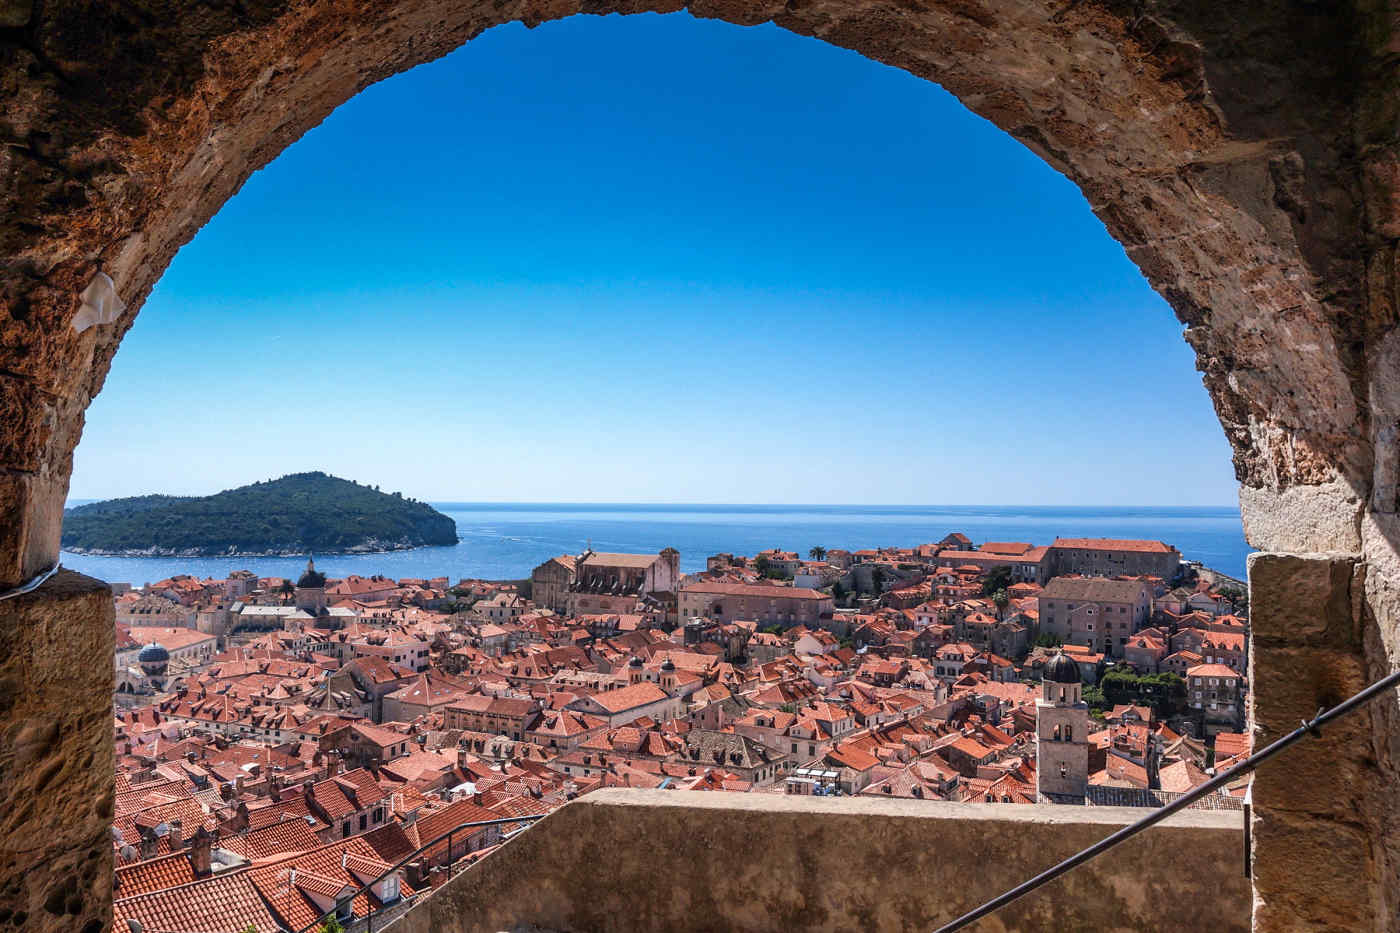 Dubrovnik with Lokrum in the distance